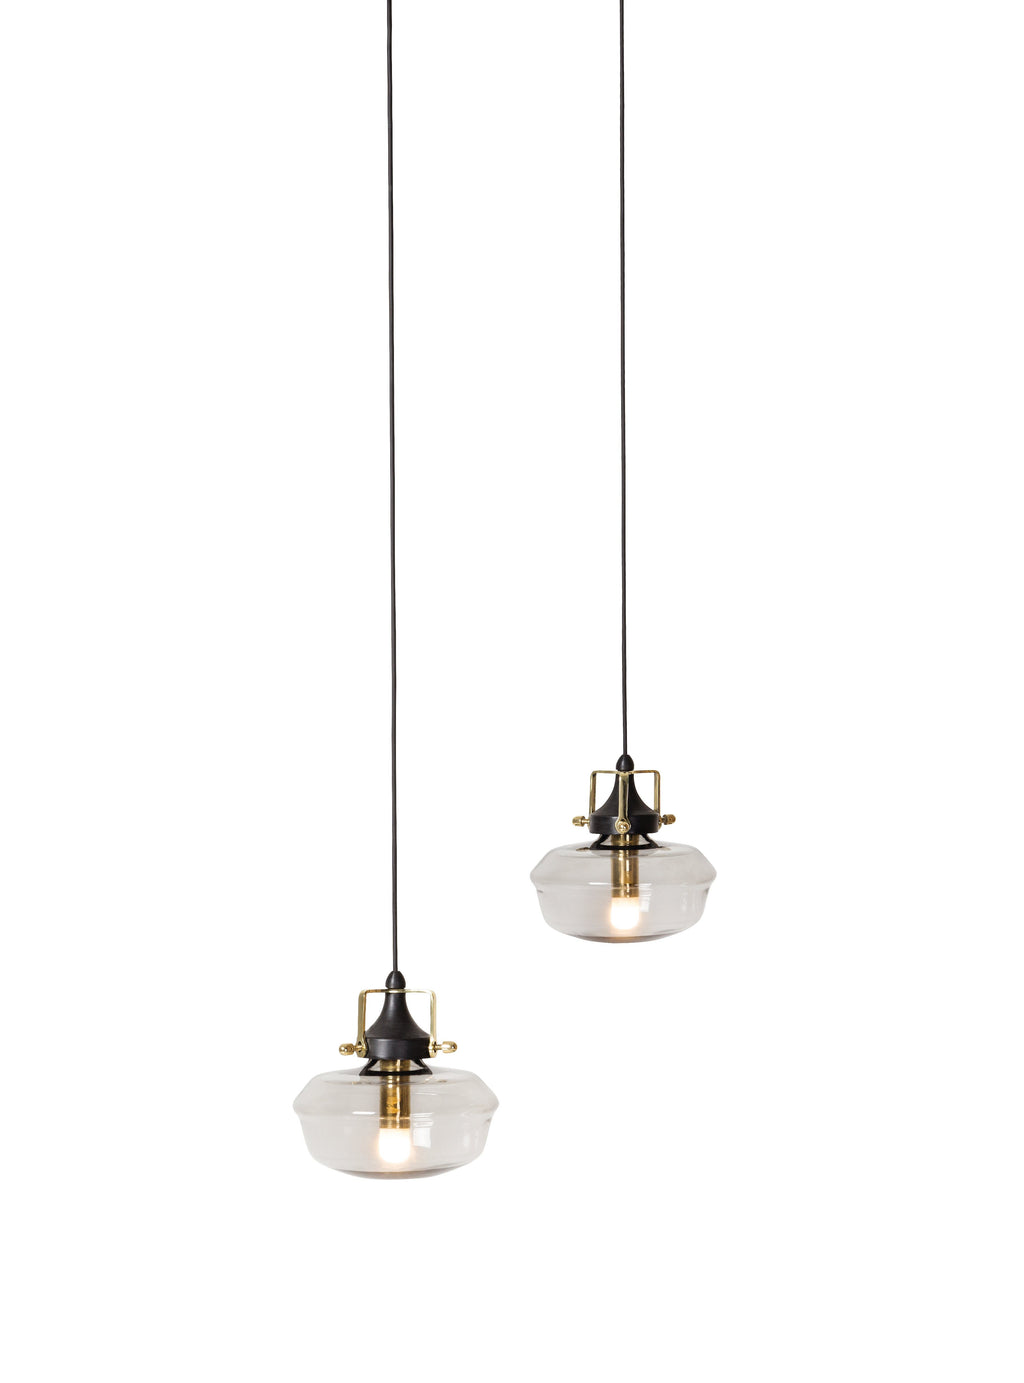 Nutt pendant light by Jader Almeida - Kelly Christian Designs